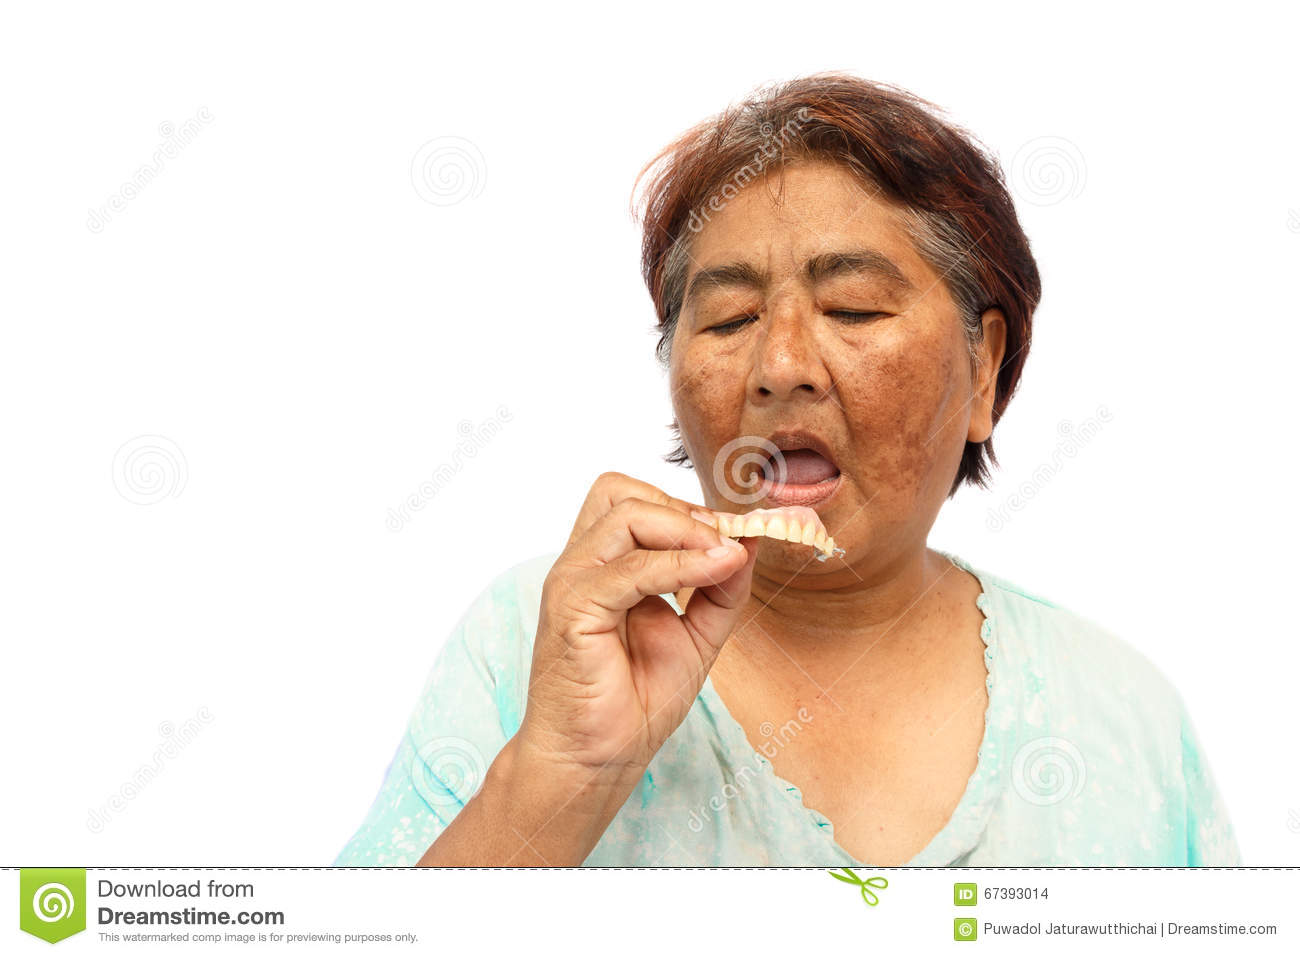 Putting dentures in mouth clipart.